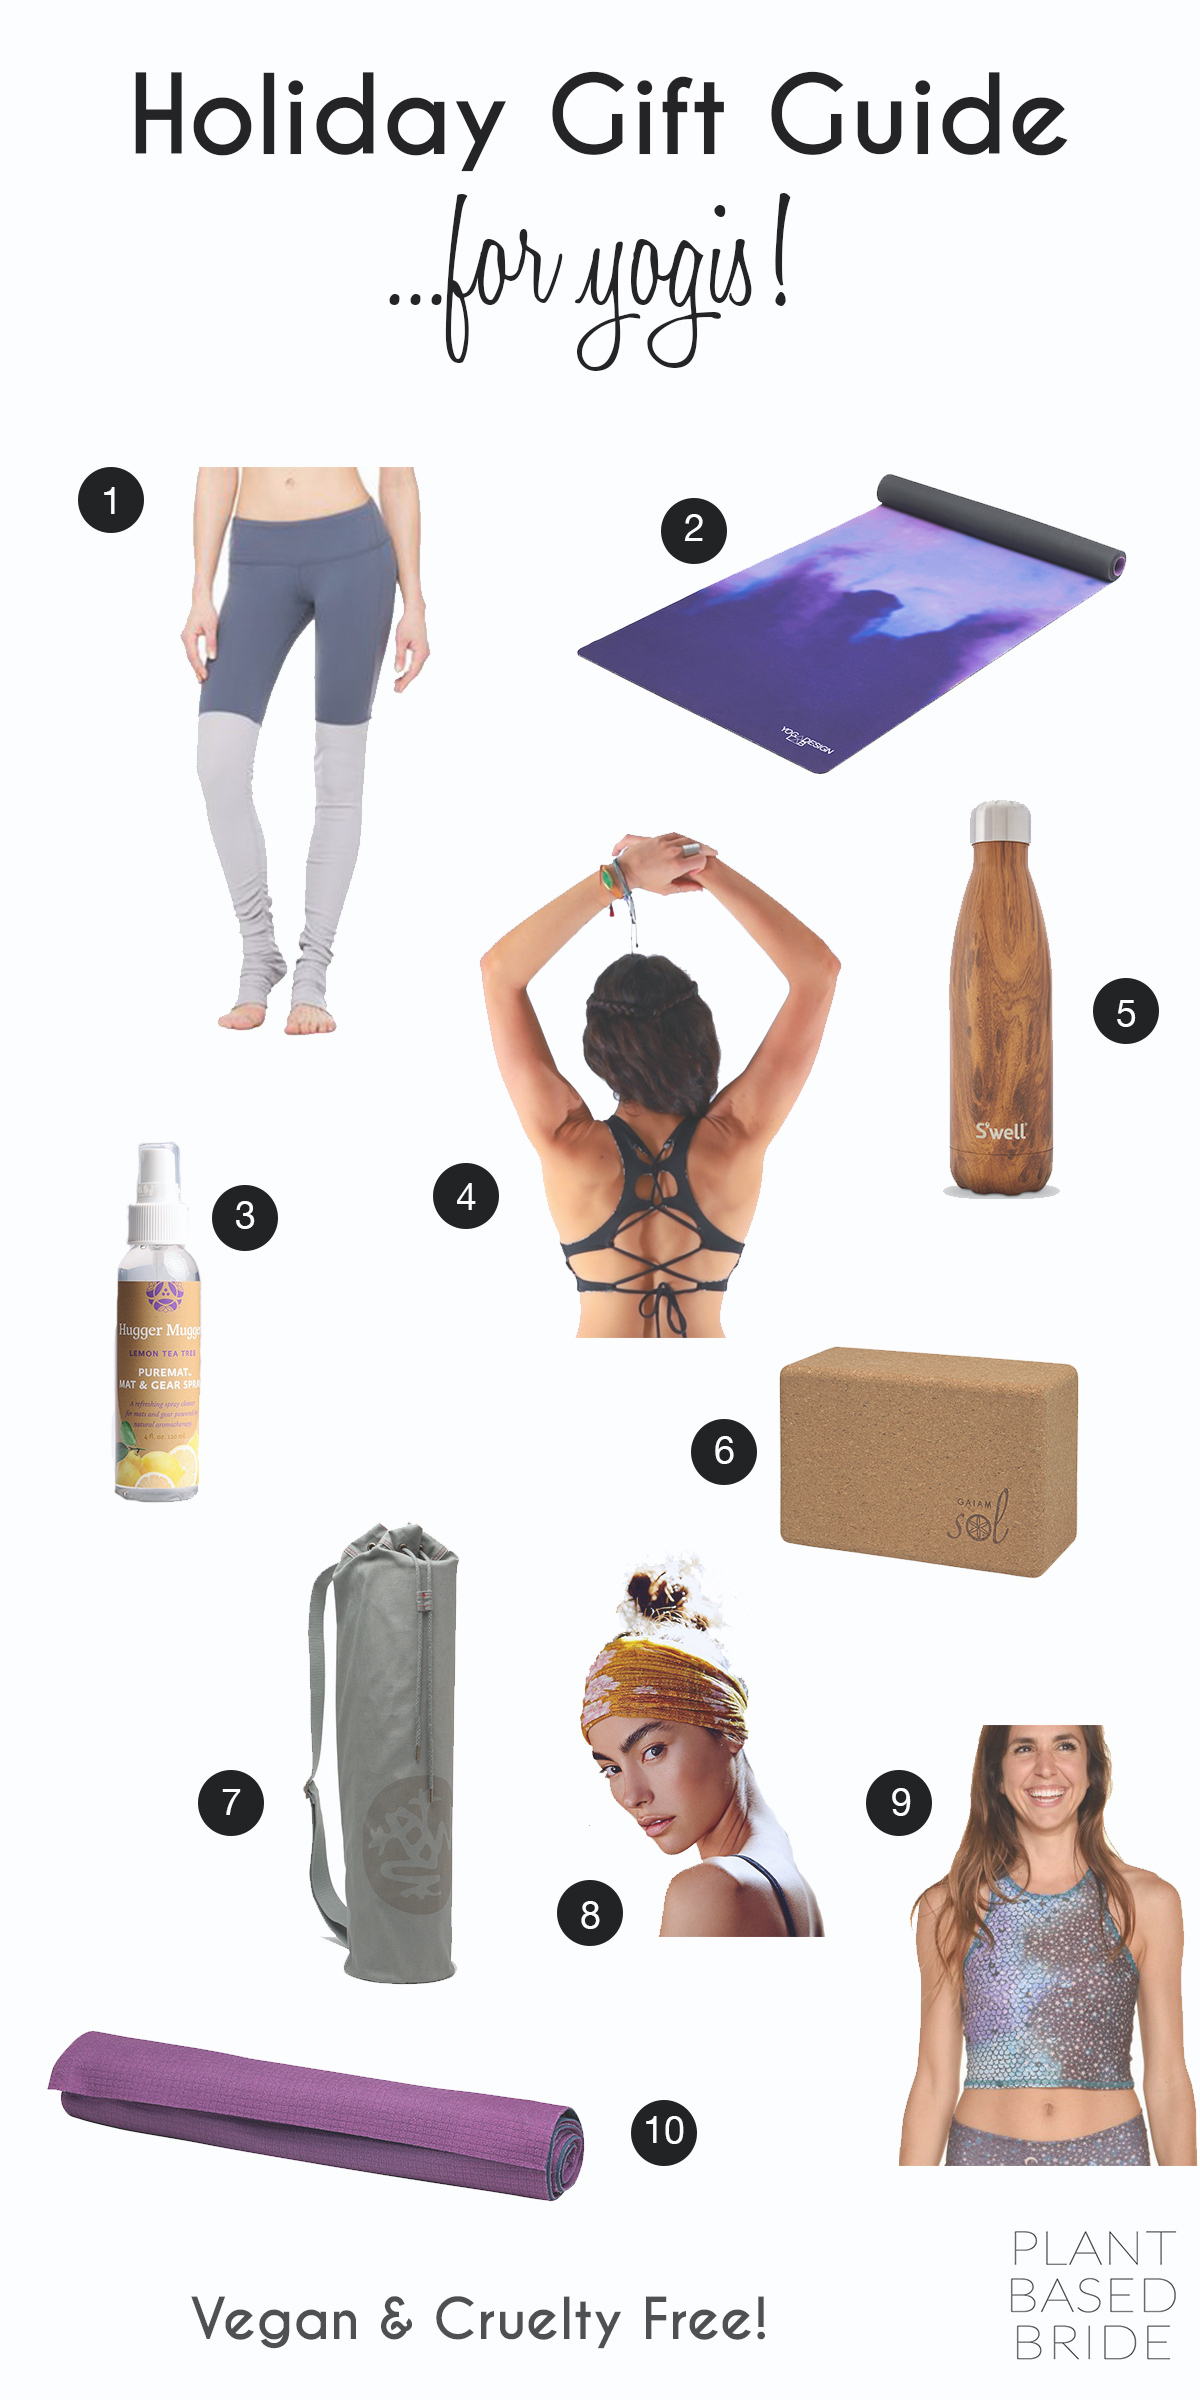 Not sure what to get the yogi on your list this holiday season?  Check out my holiday gift guide for yogis and fitness junkies alike!  100% vegan and cruelty-free from plant based bride.